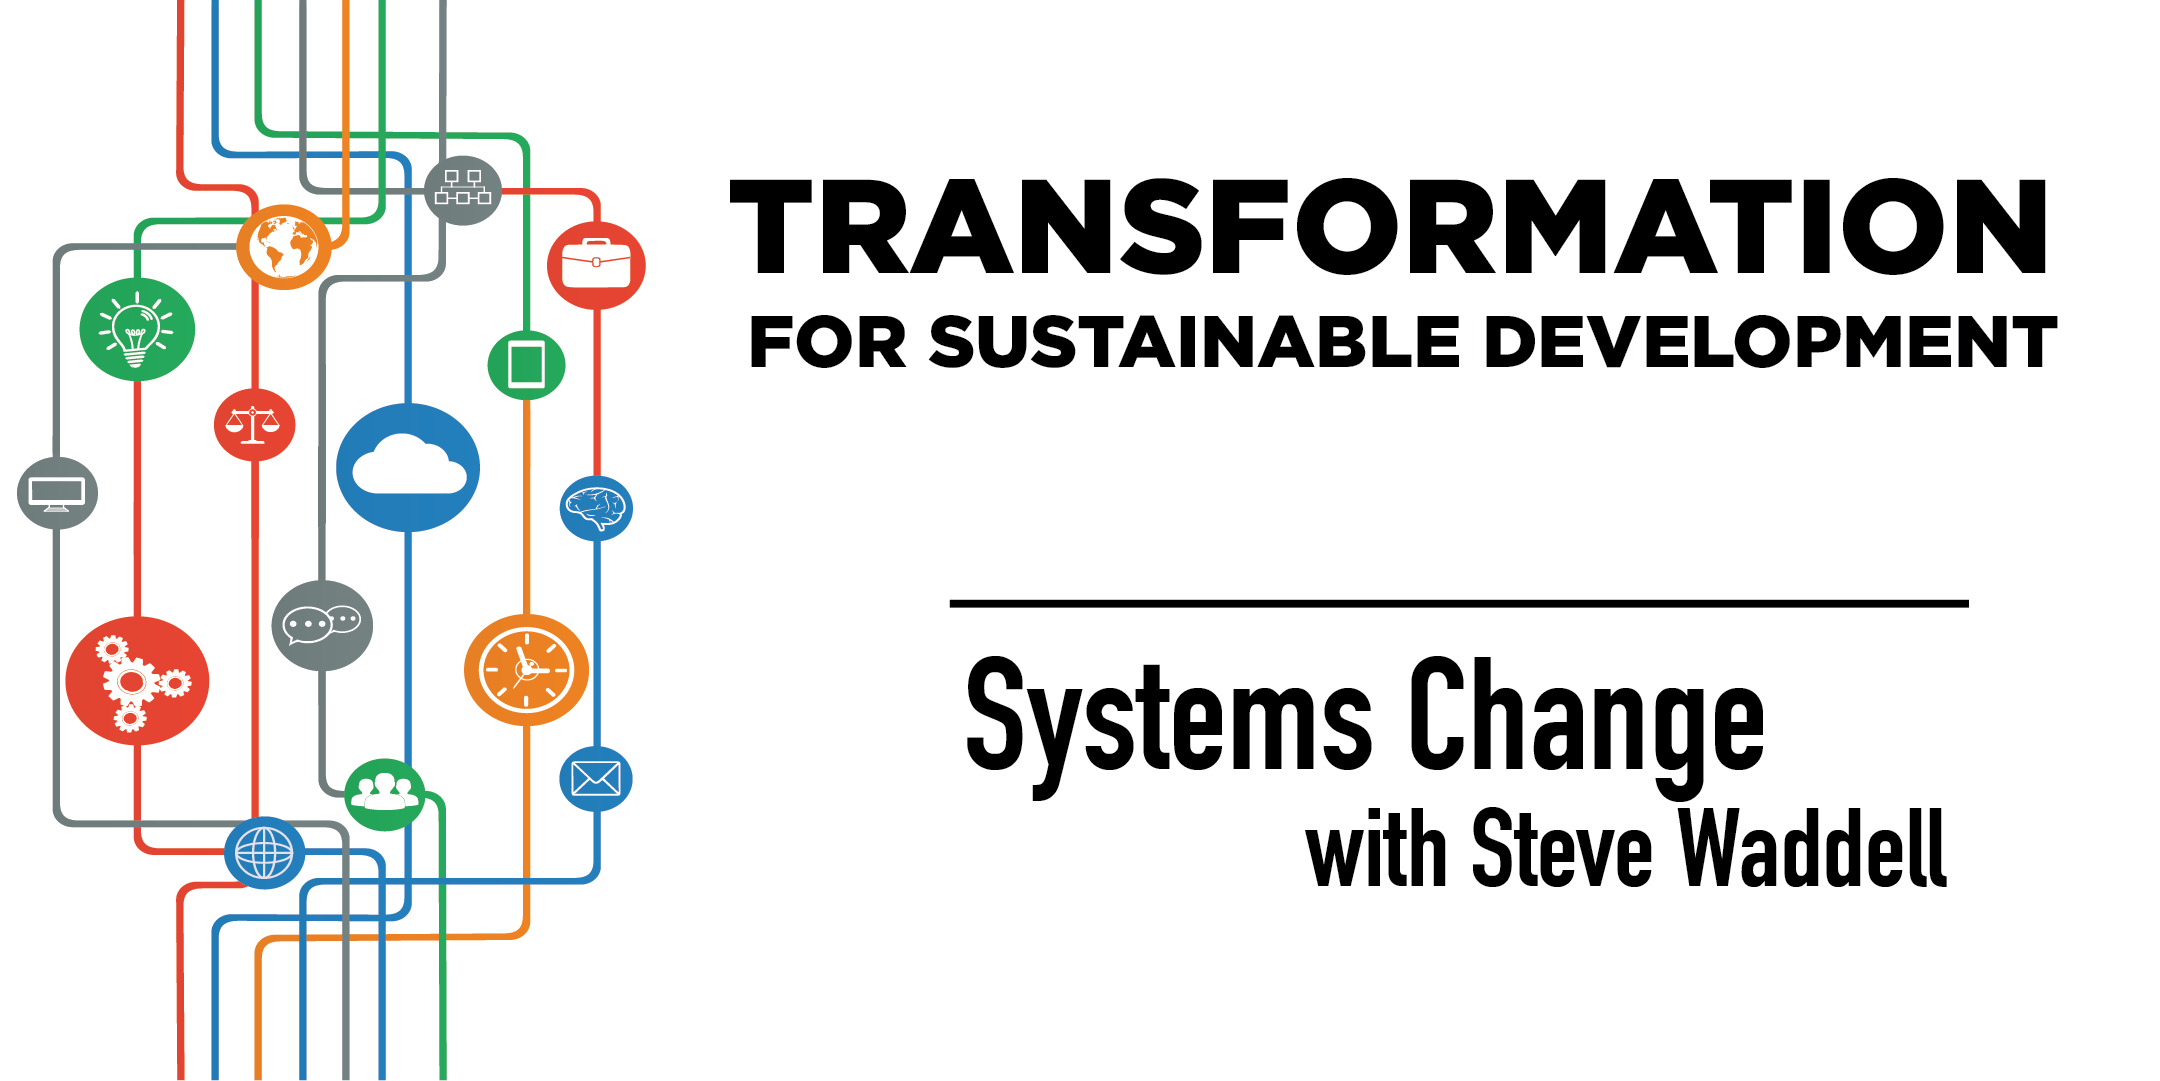 Systems Change with Steve Waddell